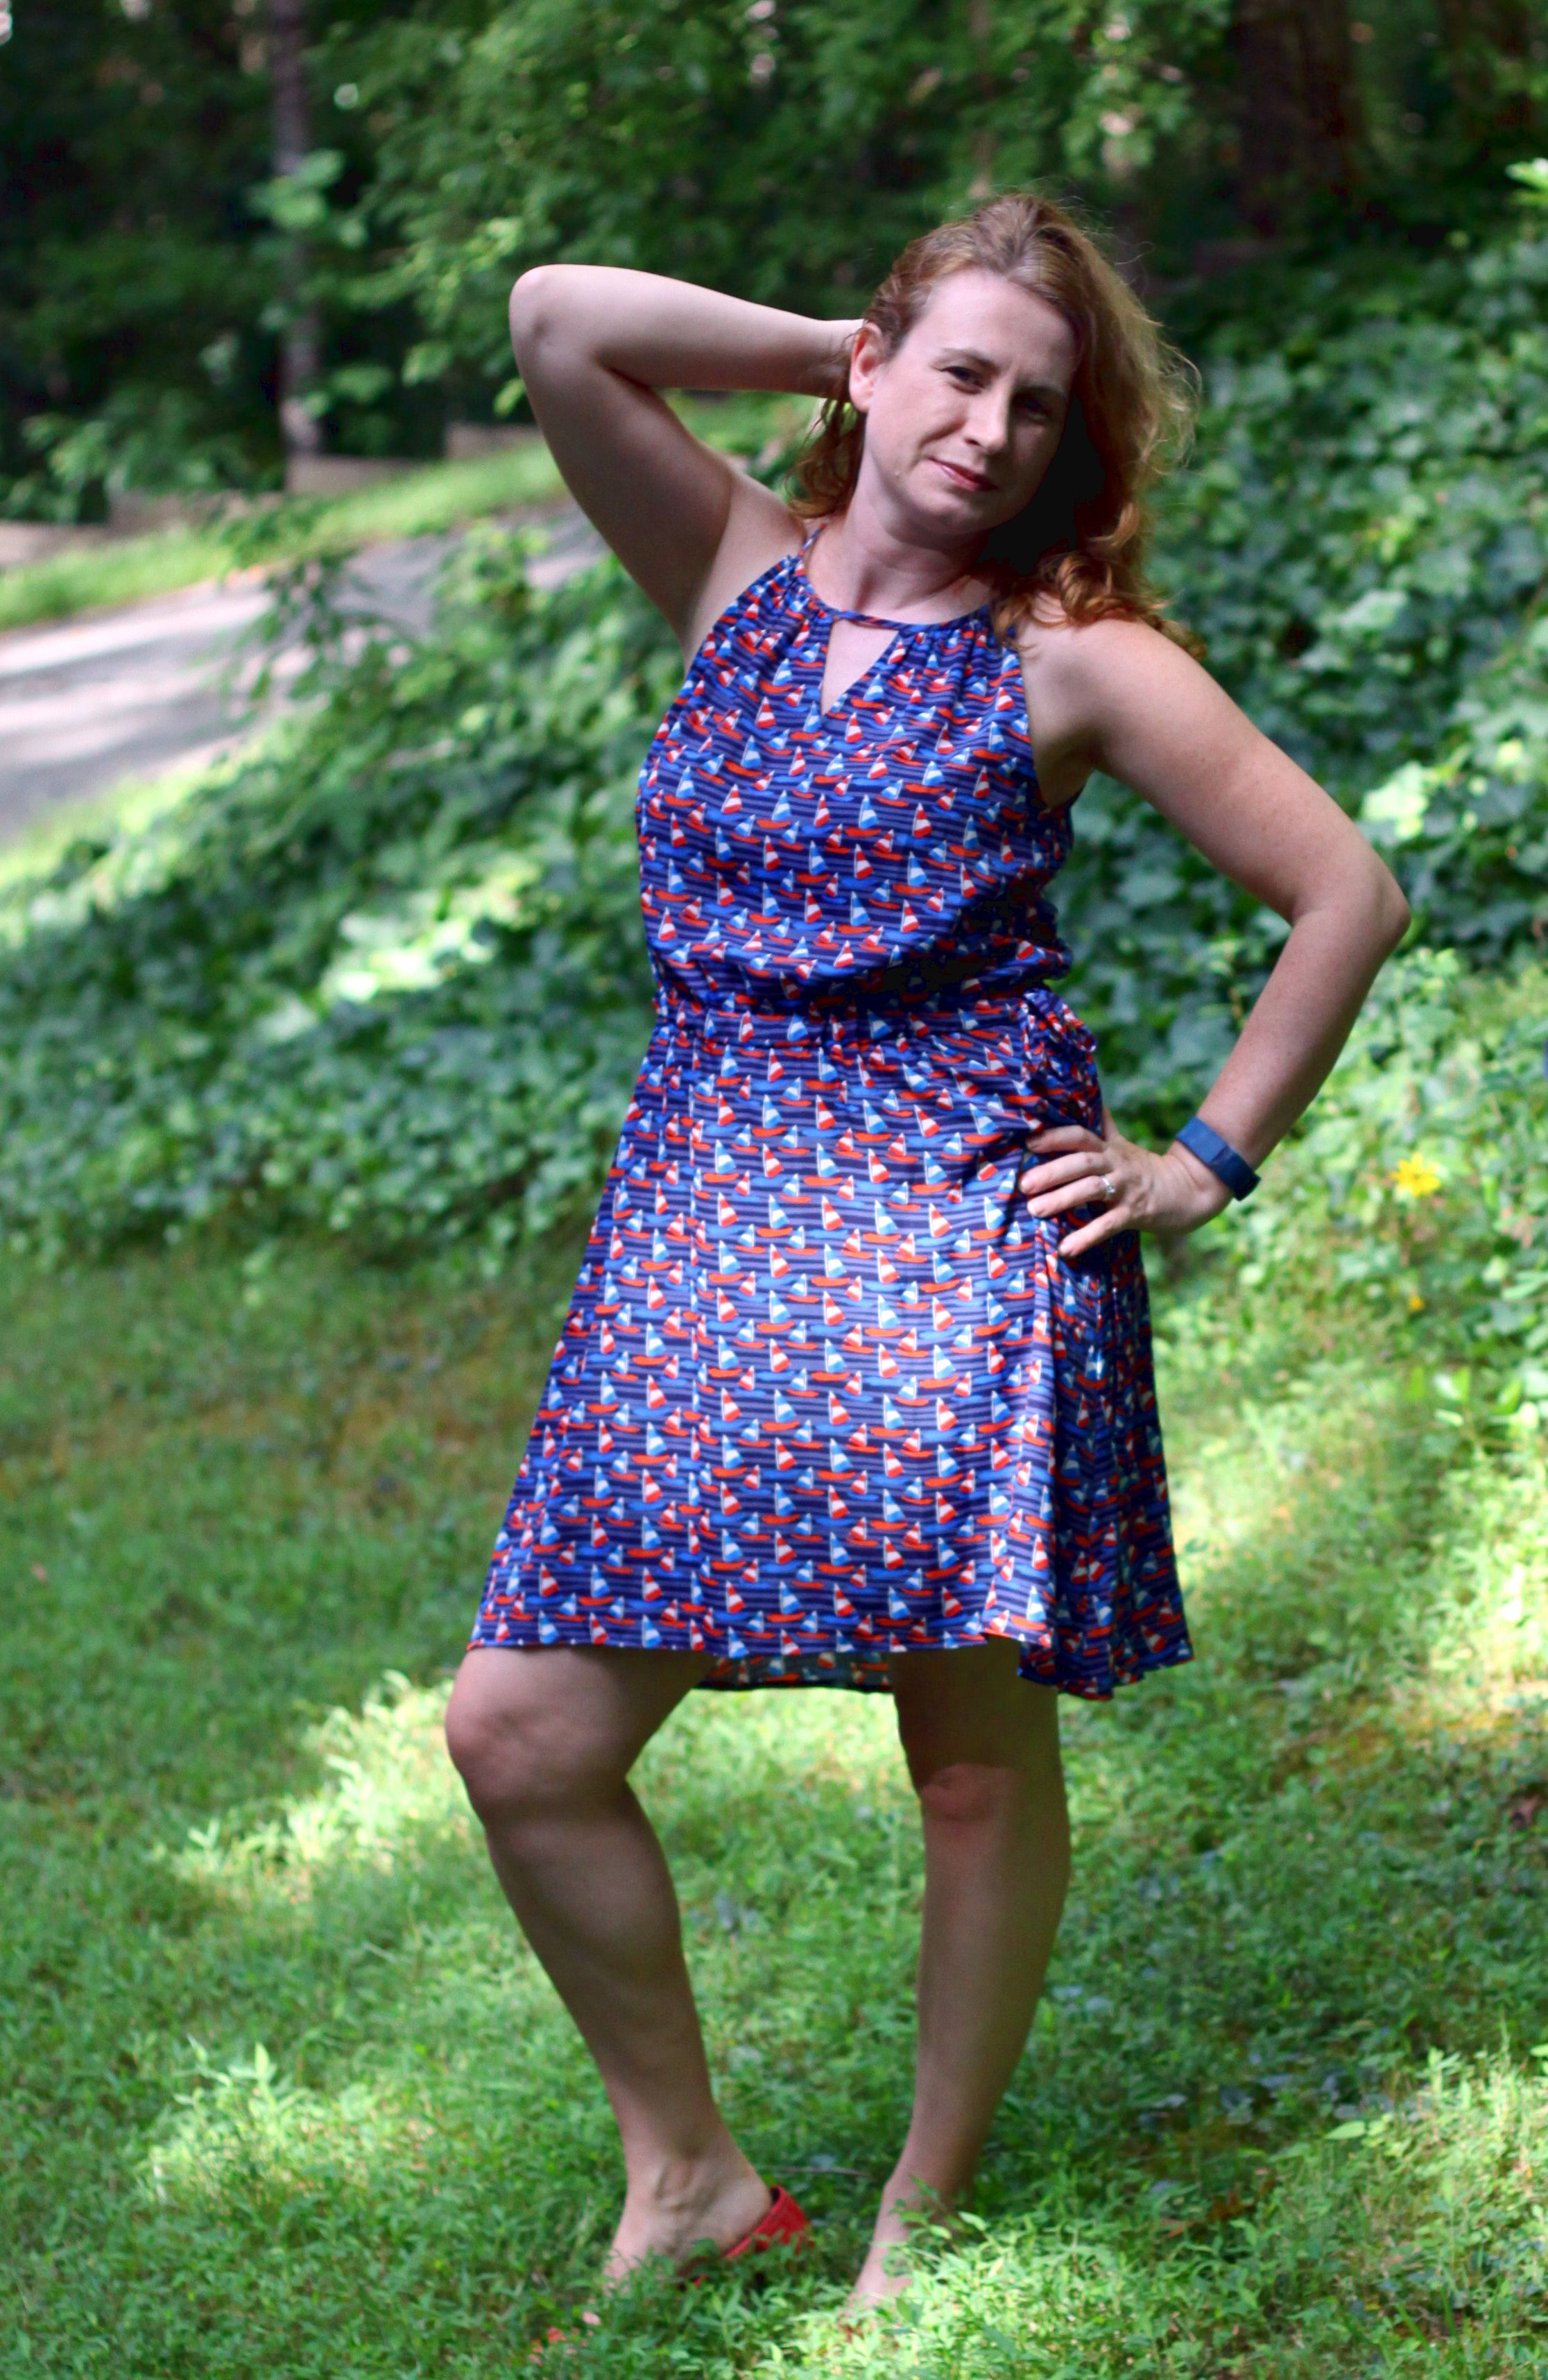 Tammi Print Dress from Stitch Fix along with  along with older  Stella & Dot  earrings and  Bow Ballet Flats  from Canvas by Land's End.